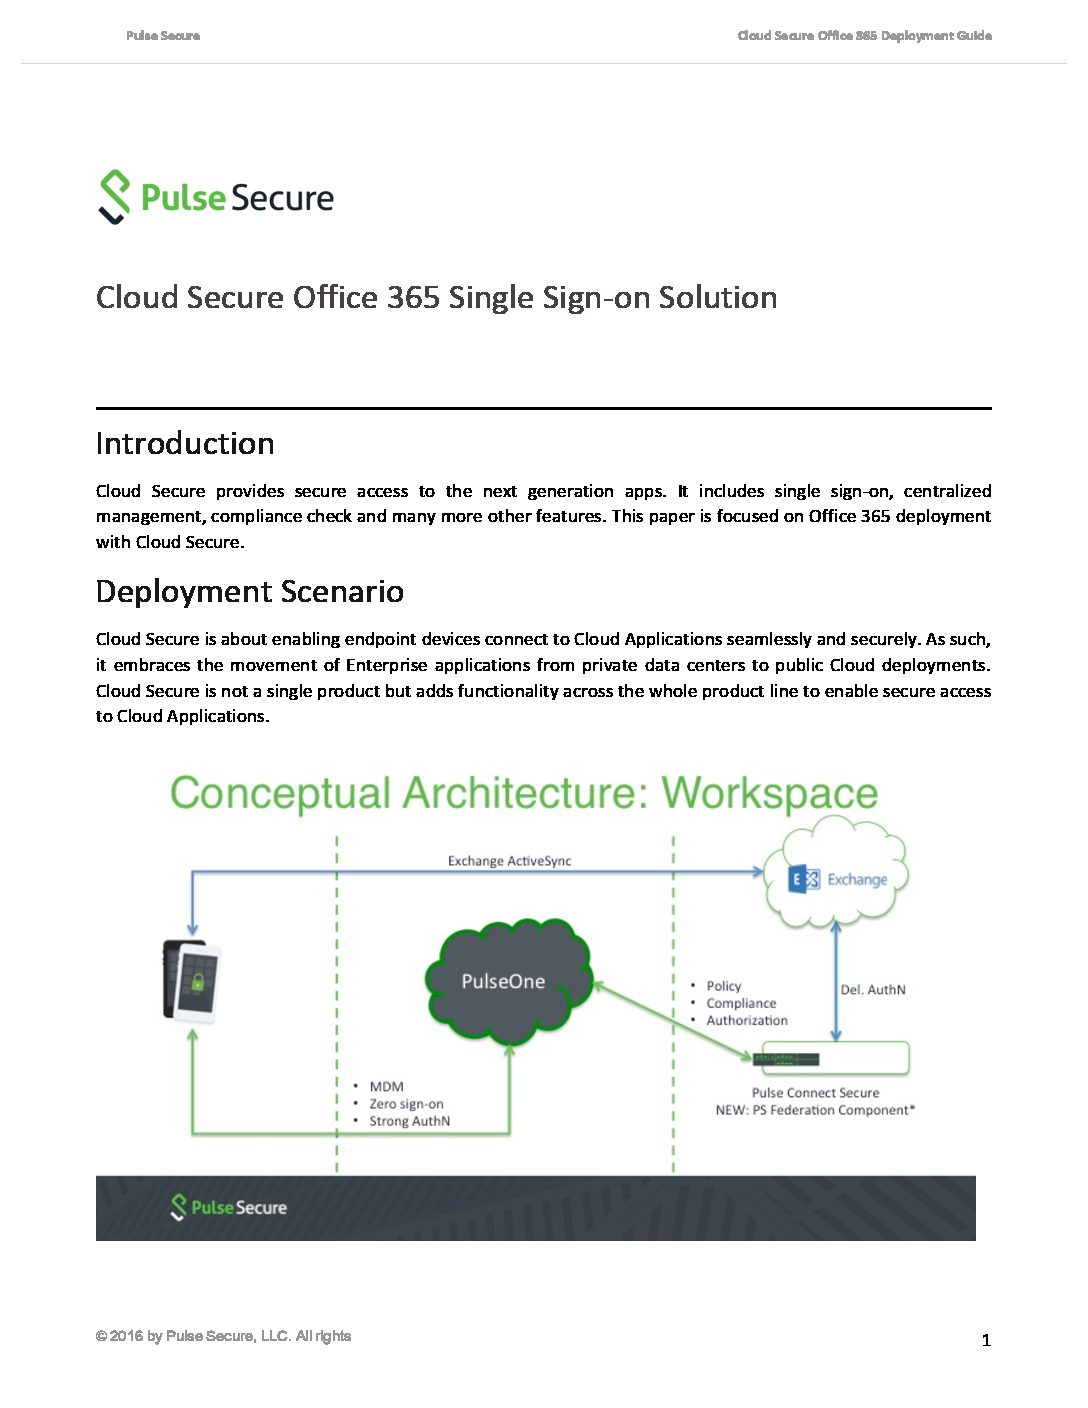 Cloud Secure Office 365 Single Sign-on Solution | Pulse Secure